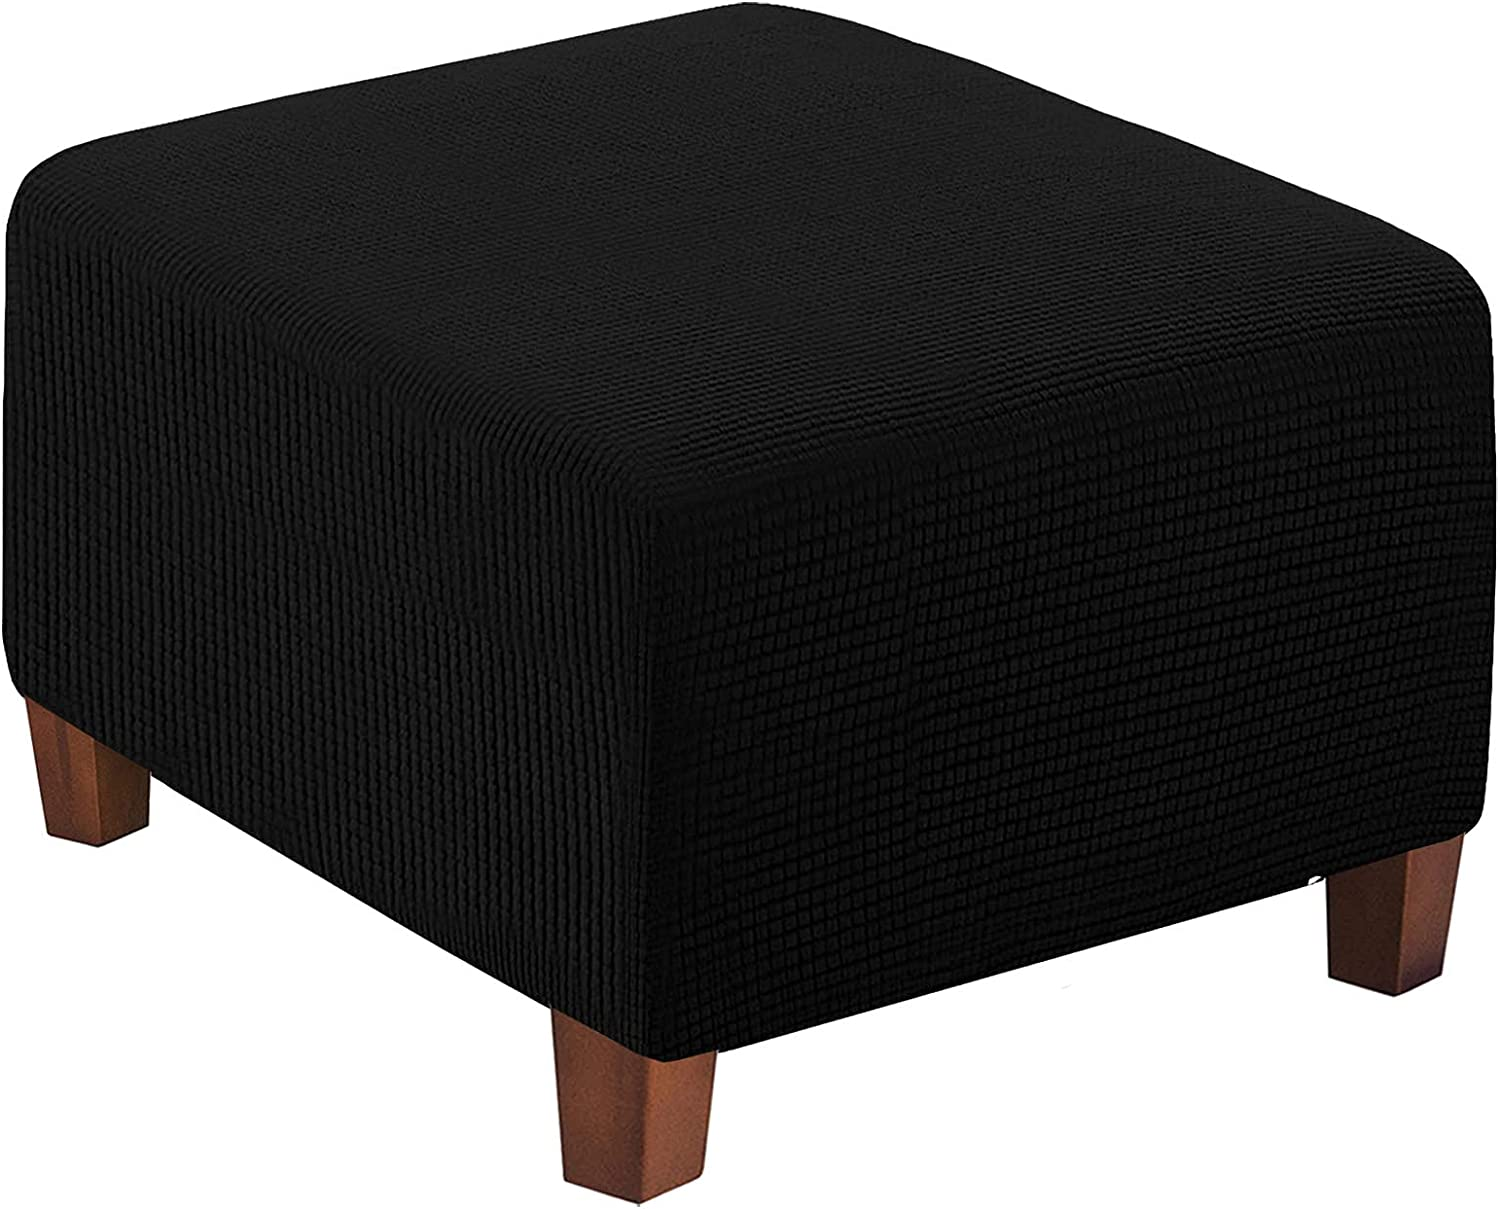 WOMACO Square Ottoman Slipcover Stretch Footstool Covers for Living Room Form Fit Folding Storage Stool Ottoman Furniture Slip Cover Protector with Elastic Bottom (Black, Oversized)